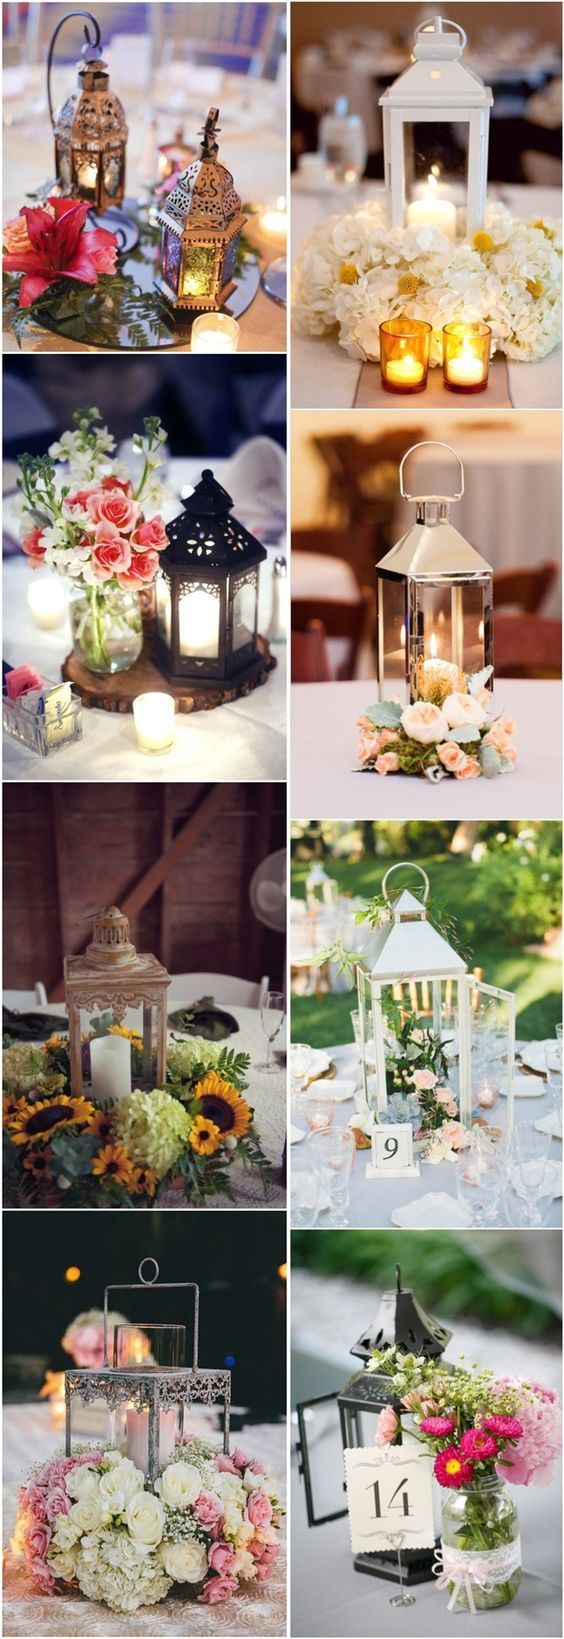 40  Amazing Lantern Wedding Centerpiece Ideas | http://www.deerpearlflowers.com/lantern-wedding-centerpiece-ideas/: